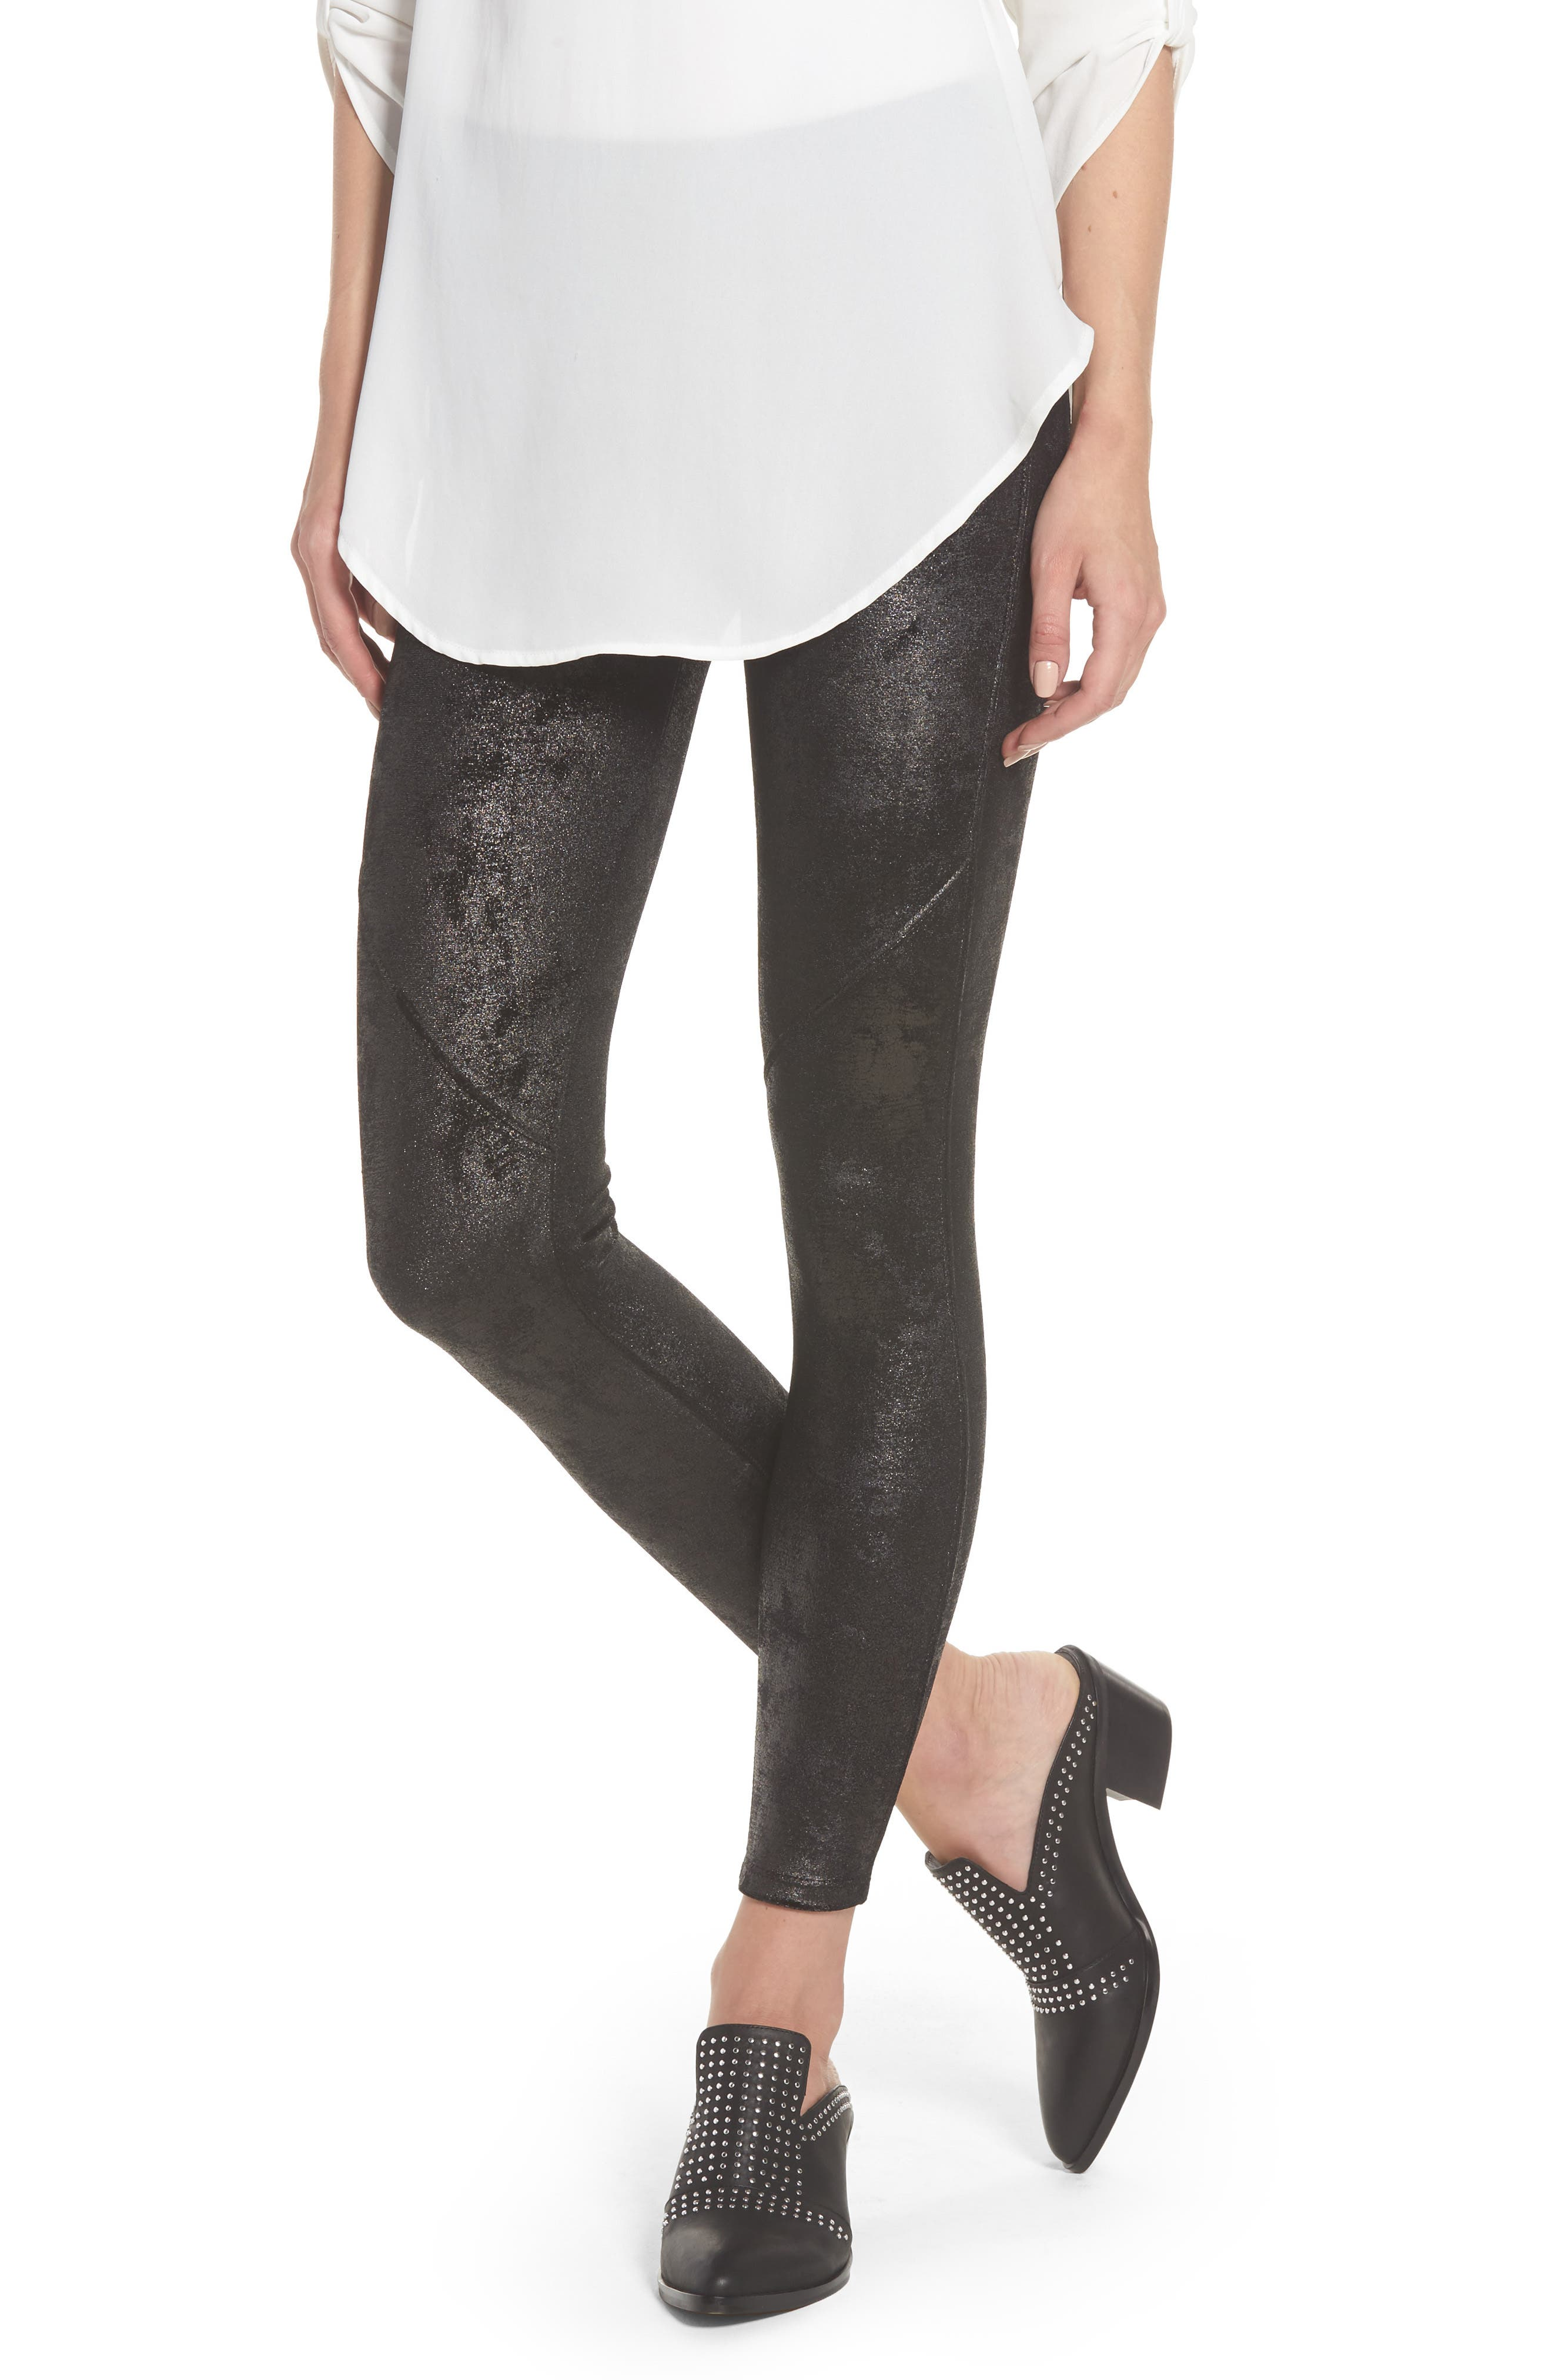 David Lerner Bergen High Waist Seamed Leggings